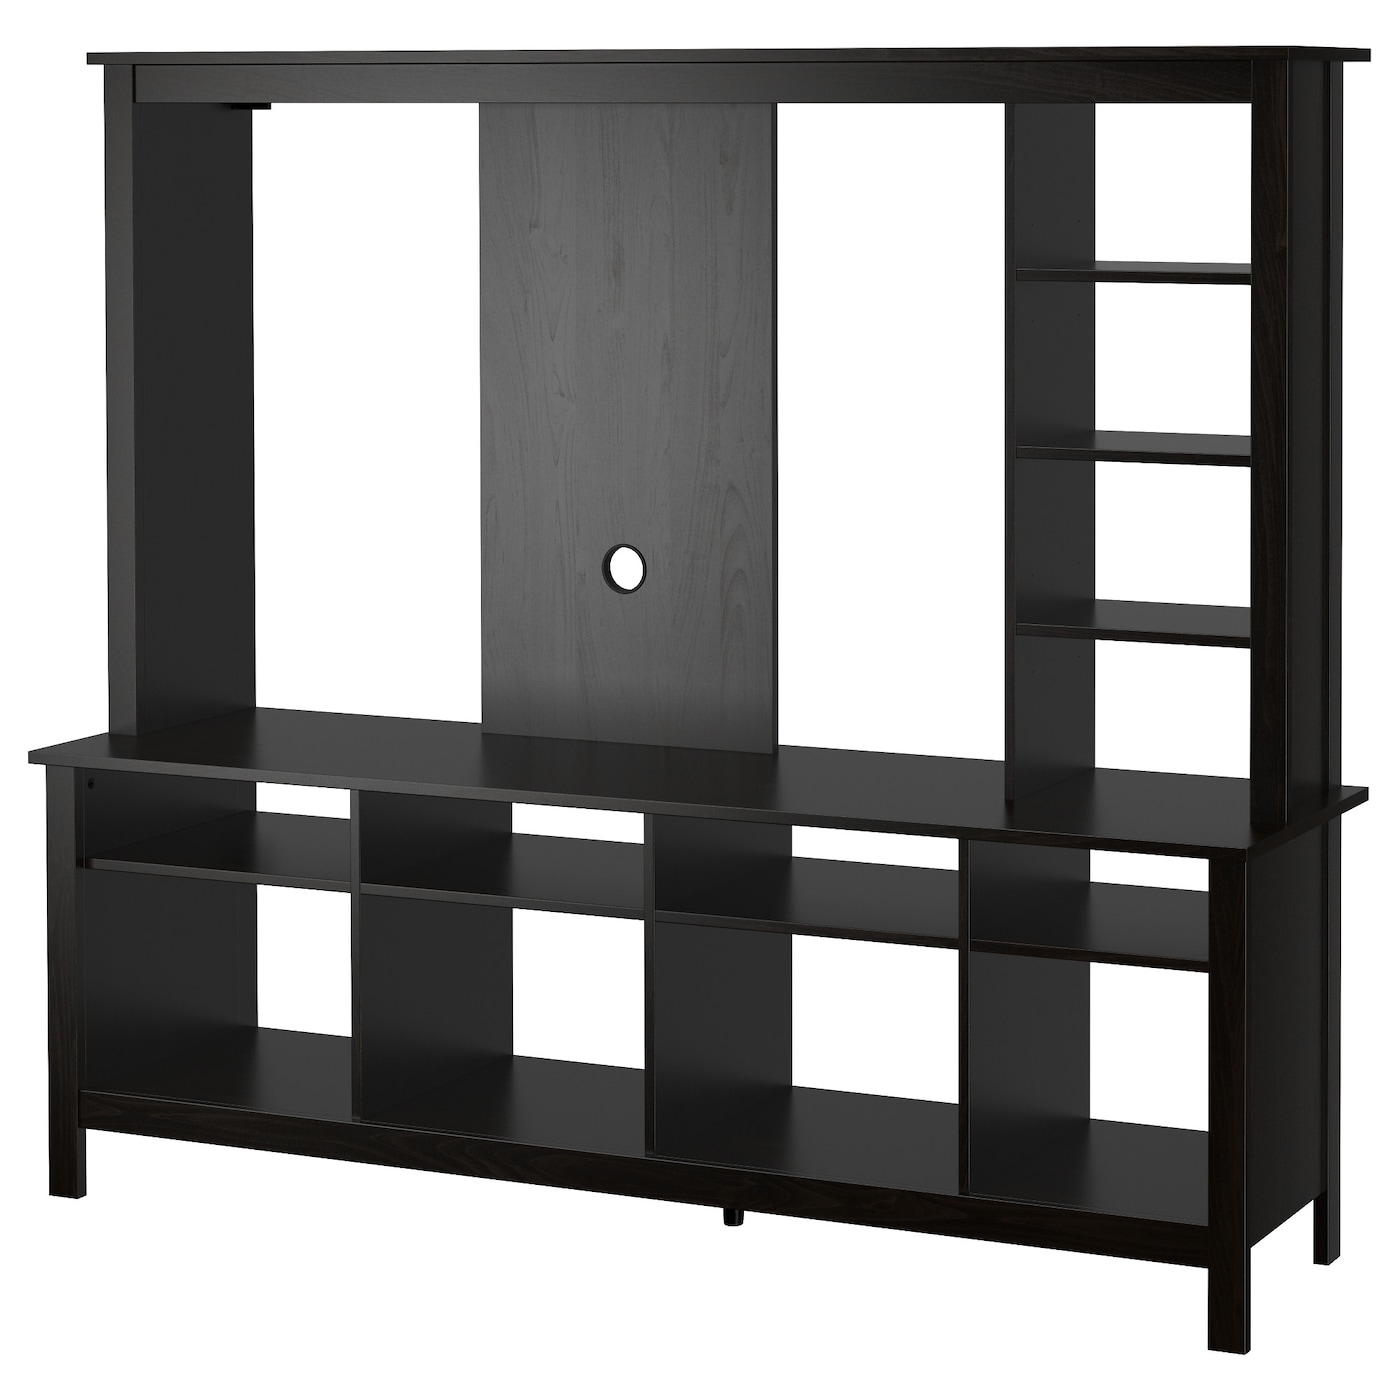 tv meubel ikea. Black Bedroom Furniture Sets. Home Design Ideas